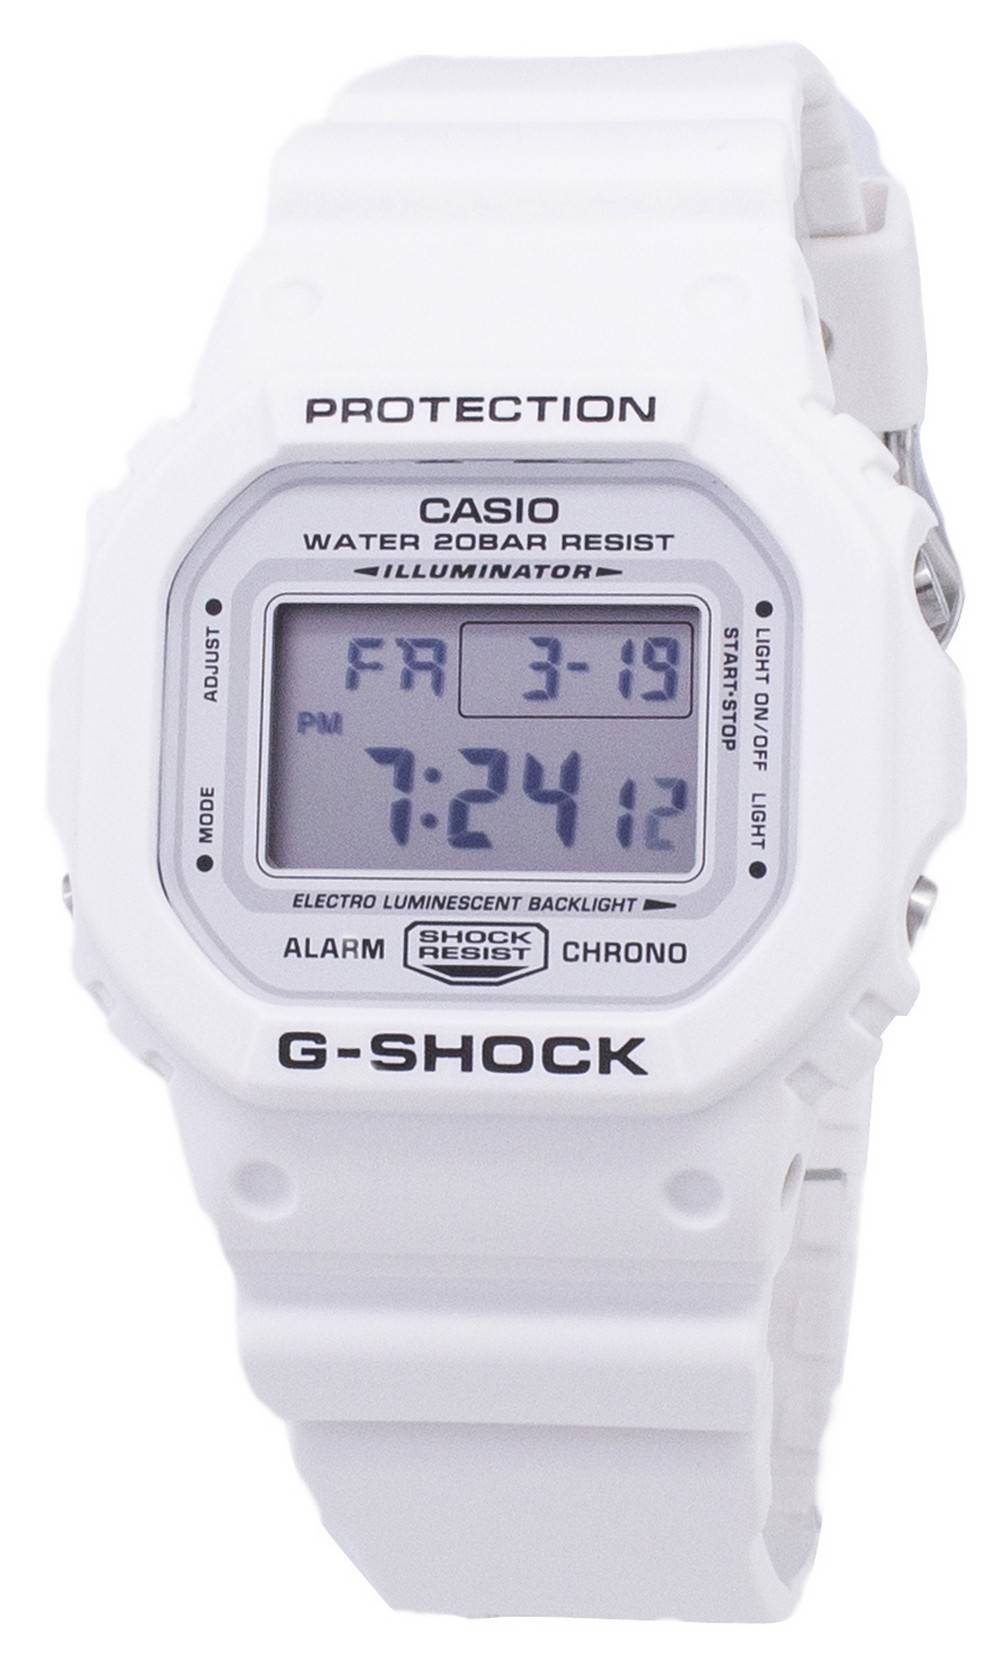 b4fbdf3a7a32e8 Orologio Casio G-Shock DW-5600MW-7 DW5600MW-7 quarzo digitale 200M-maschile  it